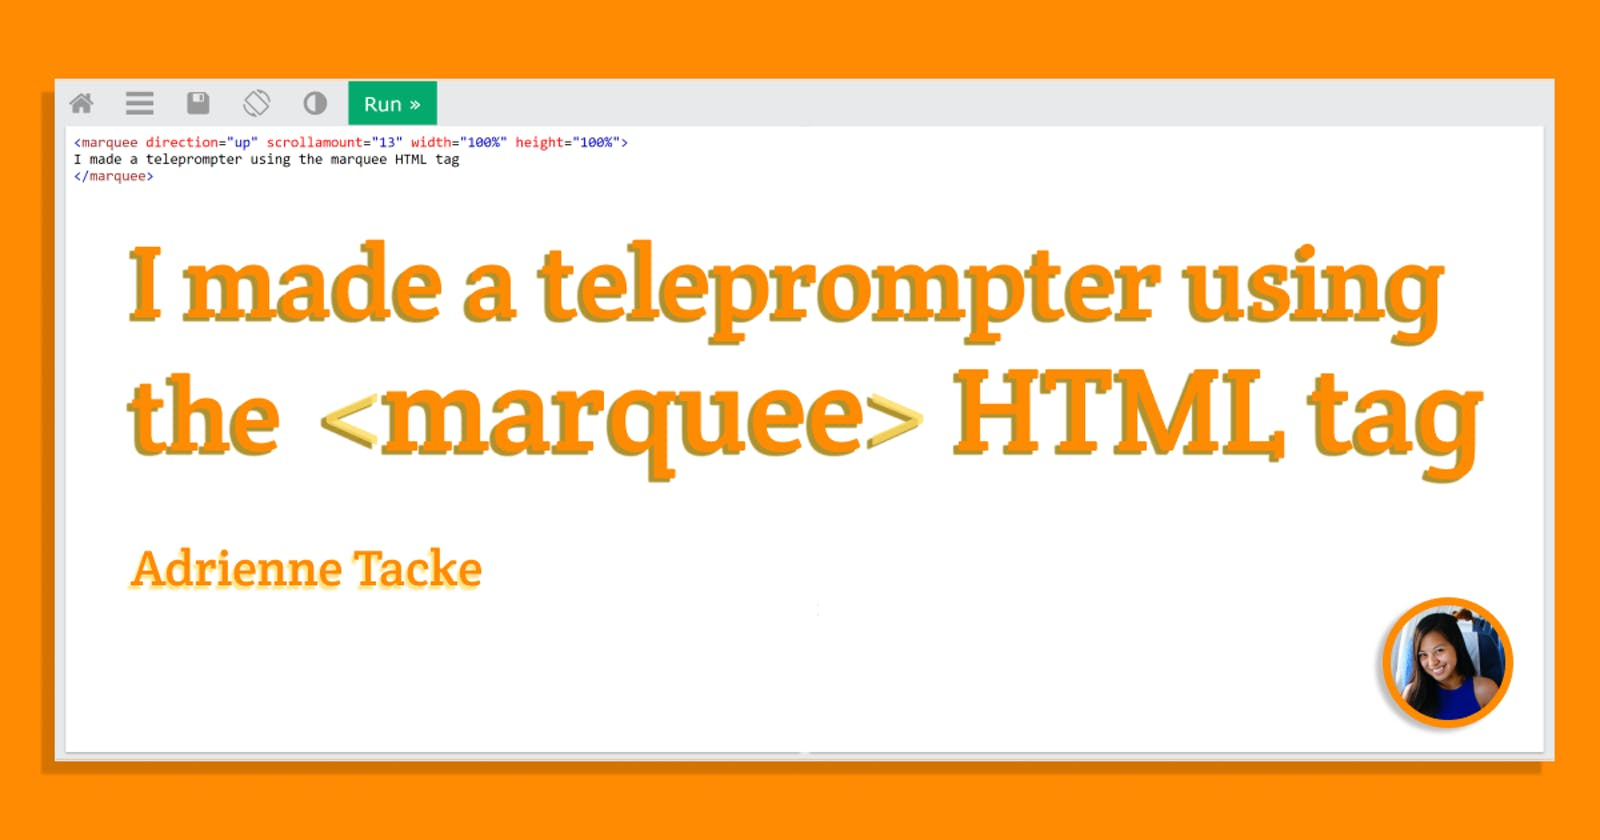 I made a teleprompter using the <marquee> HTML tag